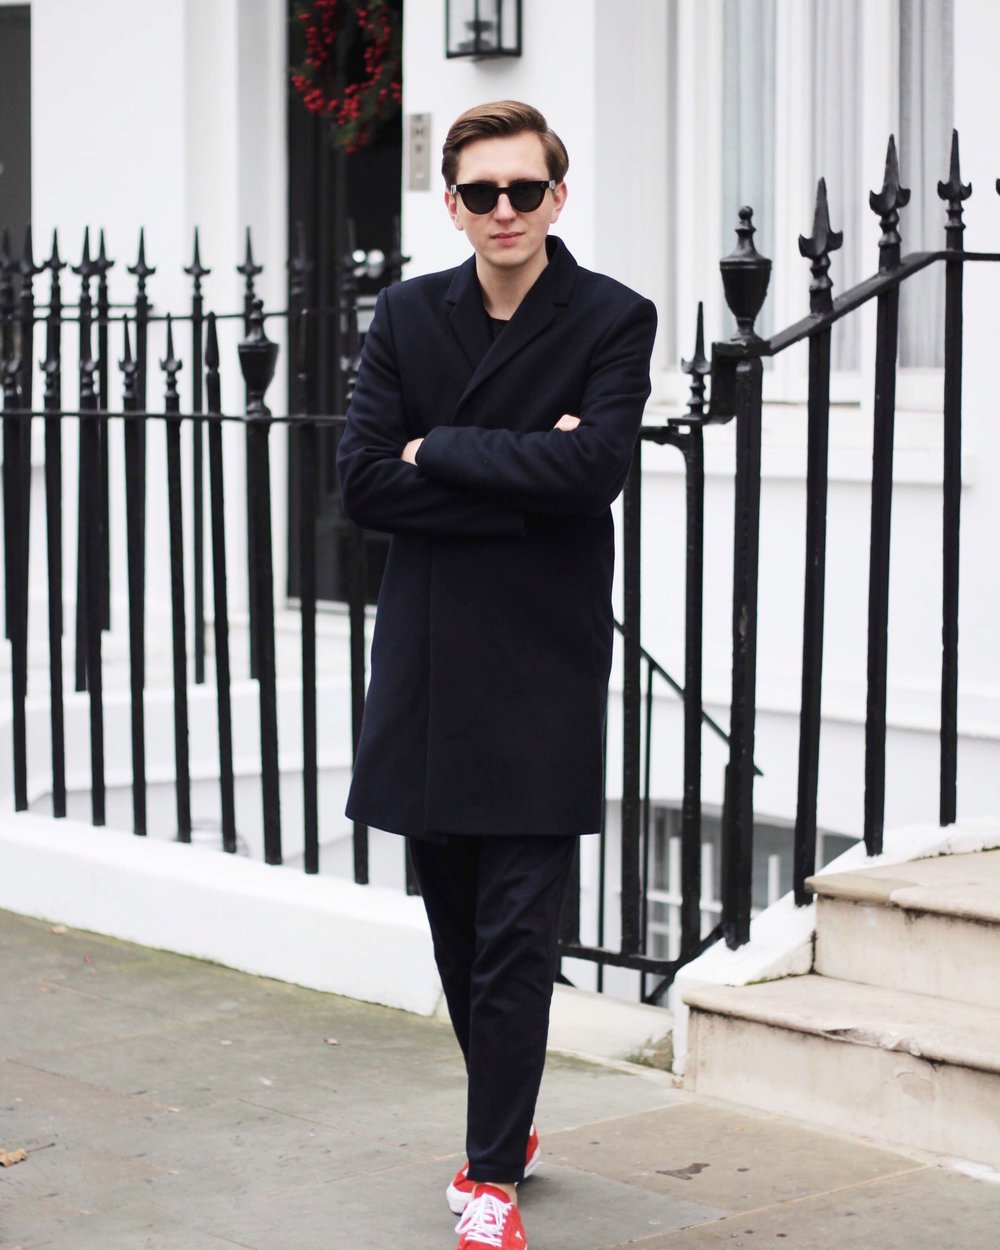 ootd_menswear_celine_chelsea_london_cos